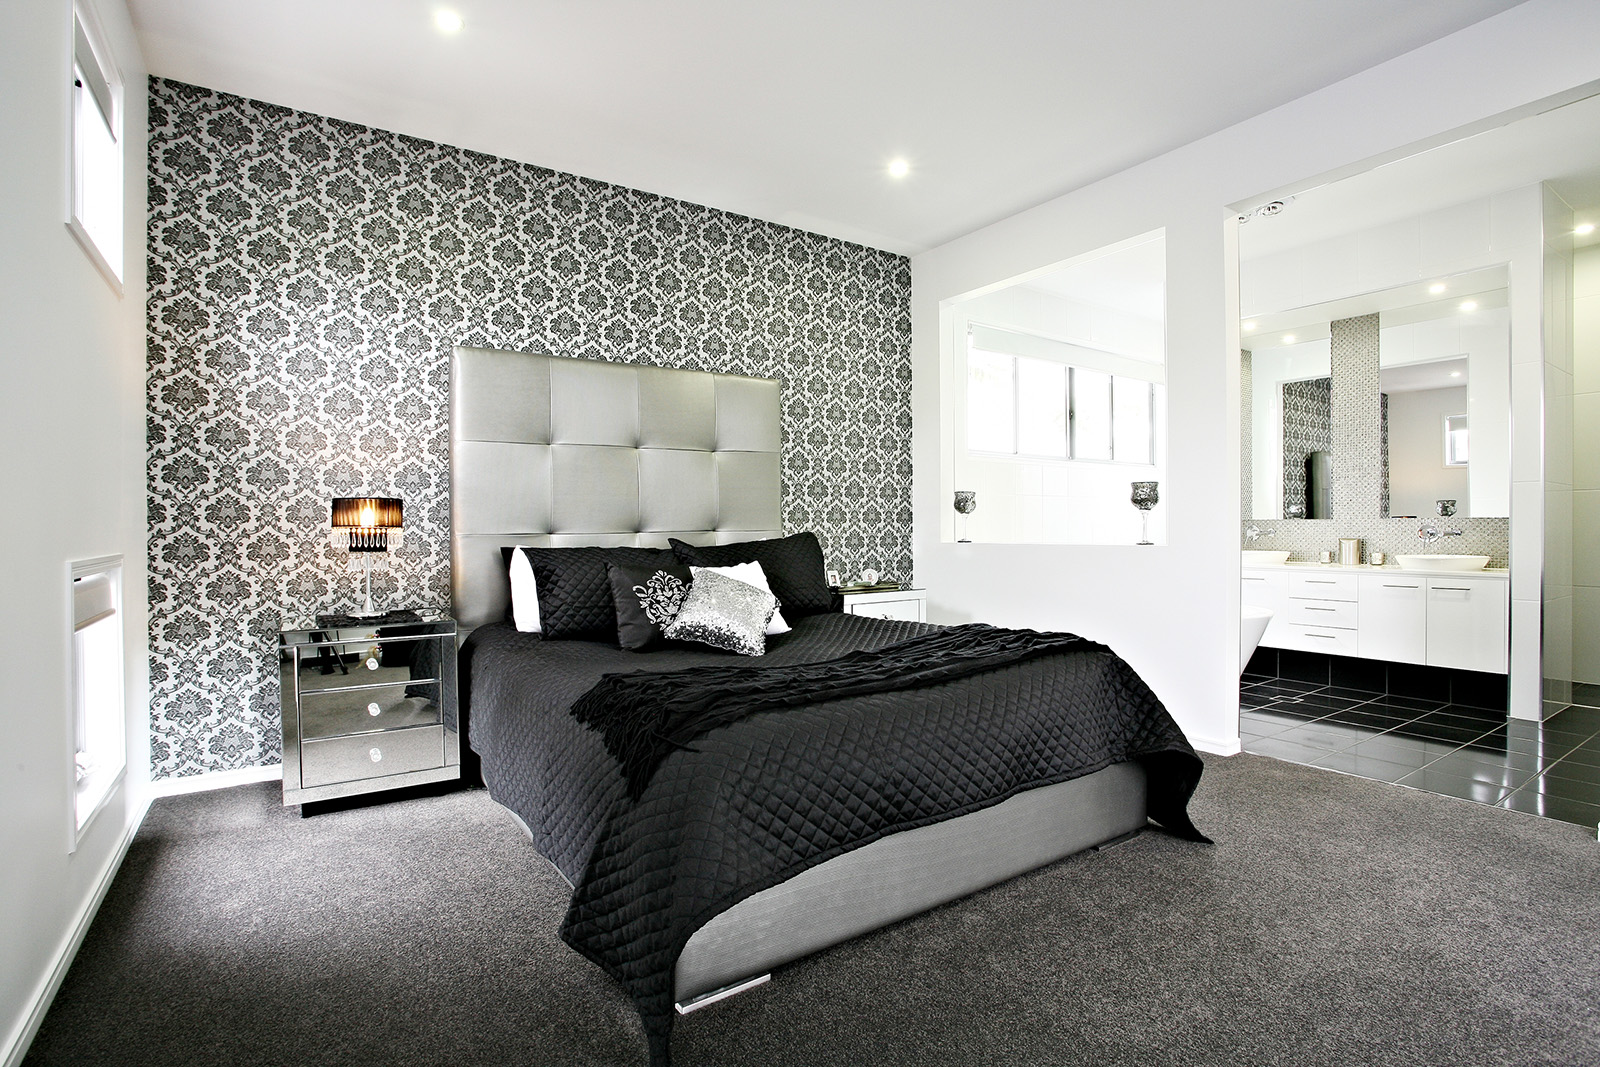 bedroom wallpaper feature wall 35 inspiration. Black Bedroom Furniture Sets. Home Design Ideas